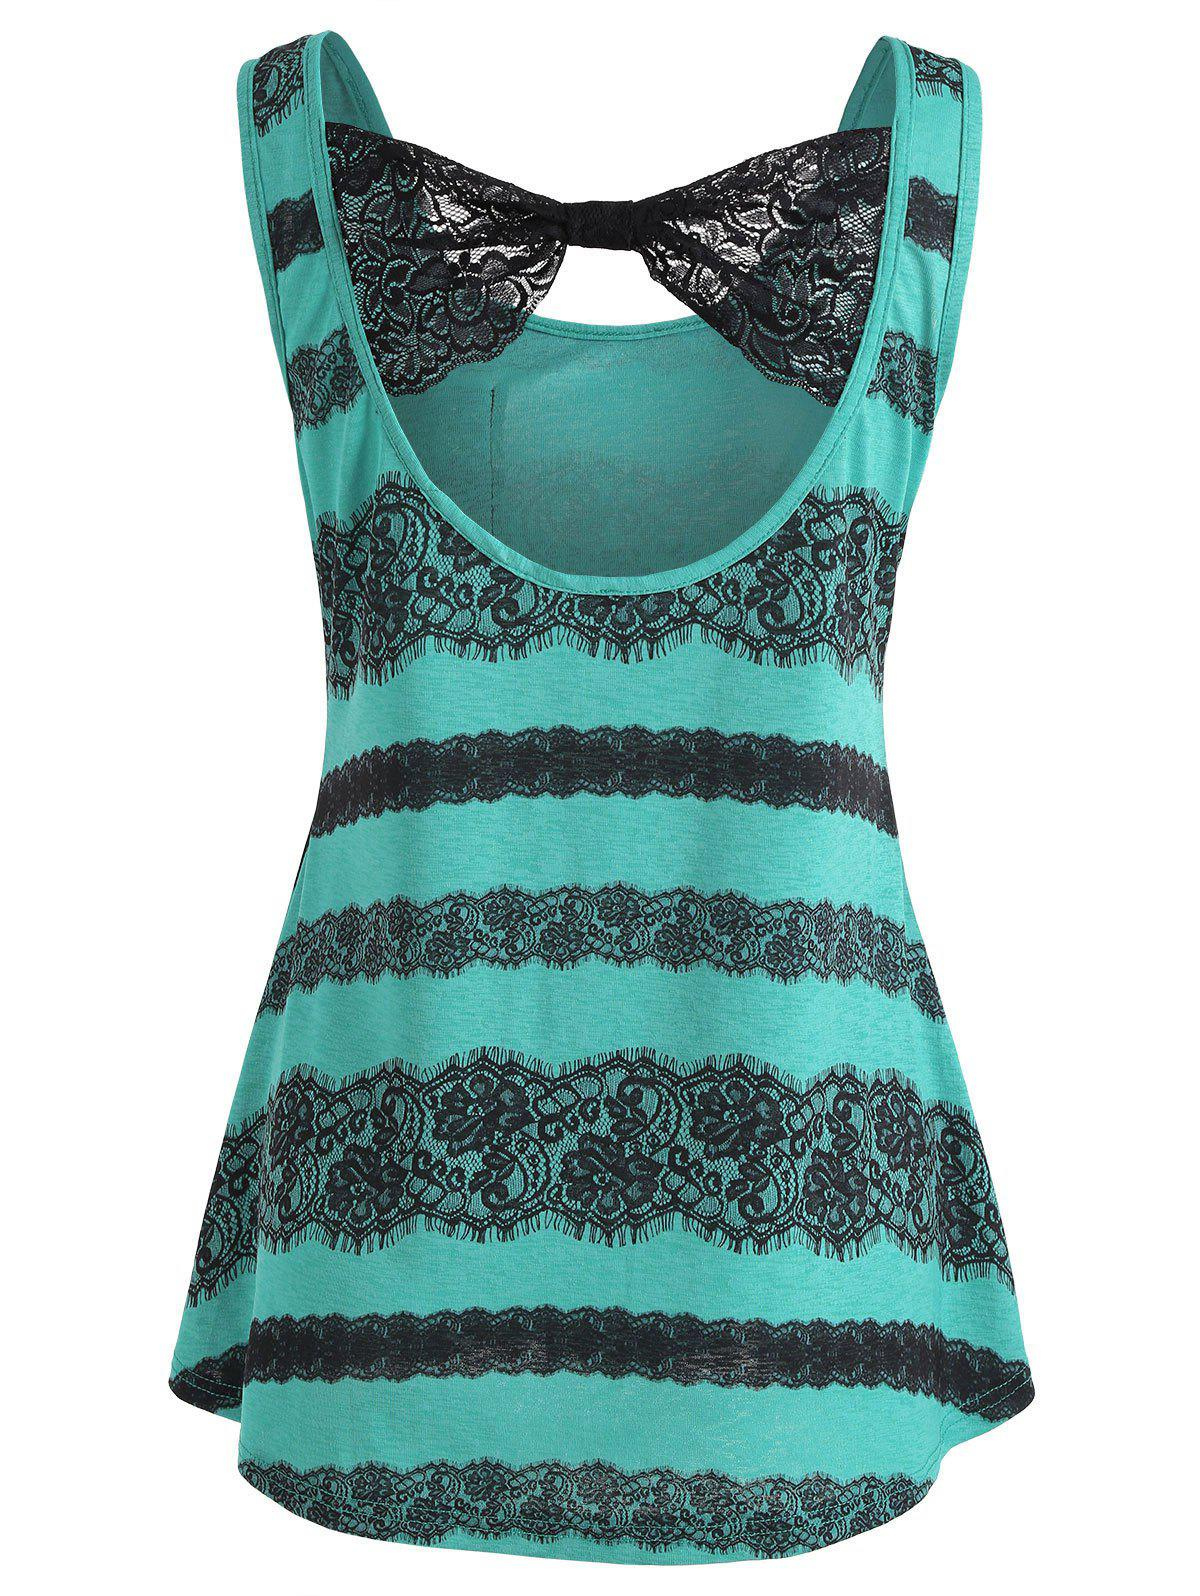 Lace Panel Low Back Tank Top - GREENISH BLUE 2XL